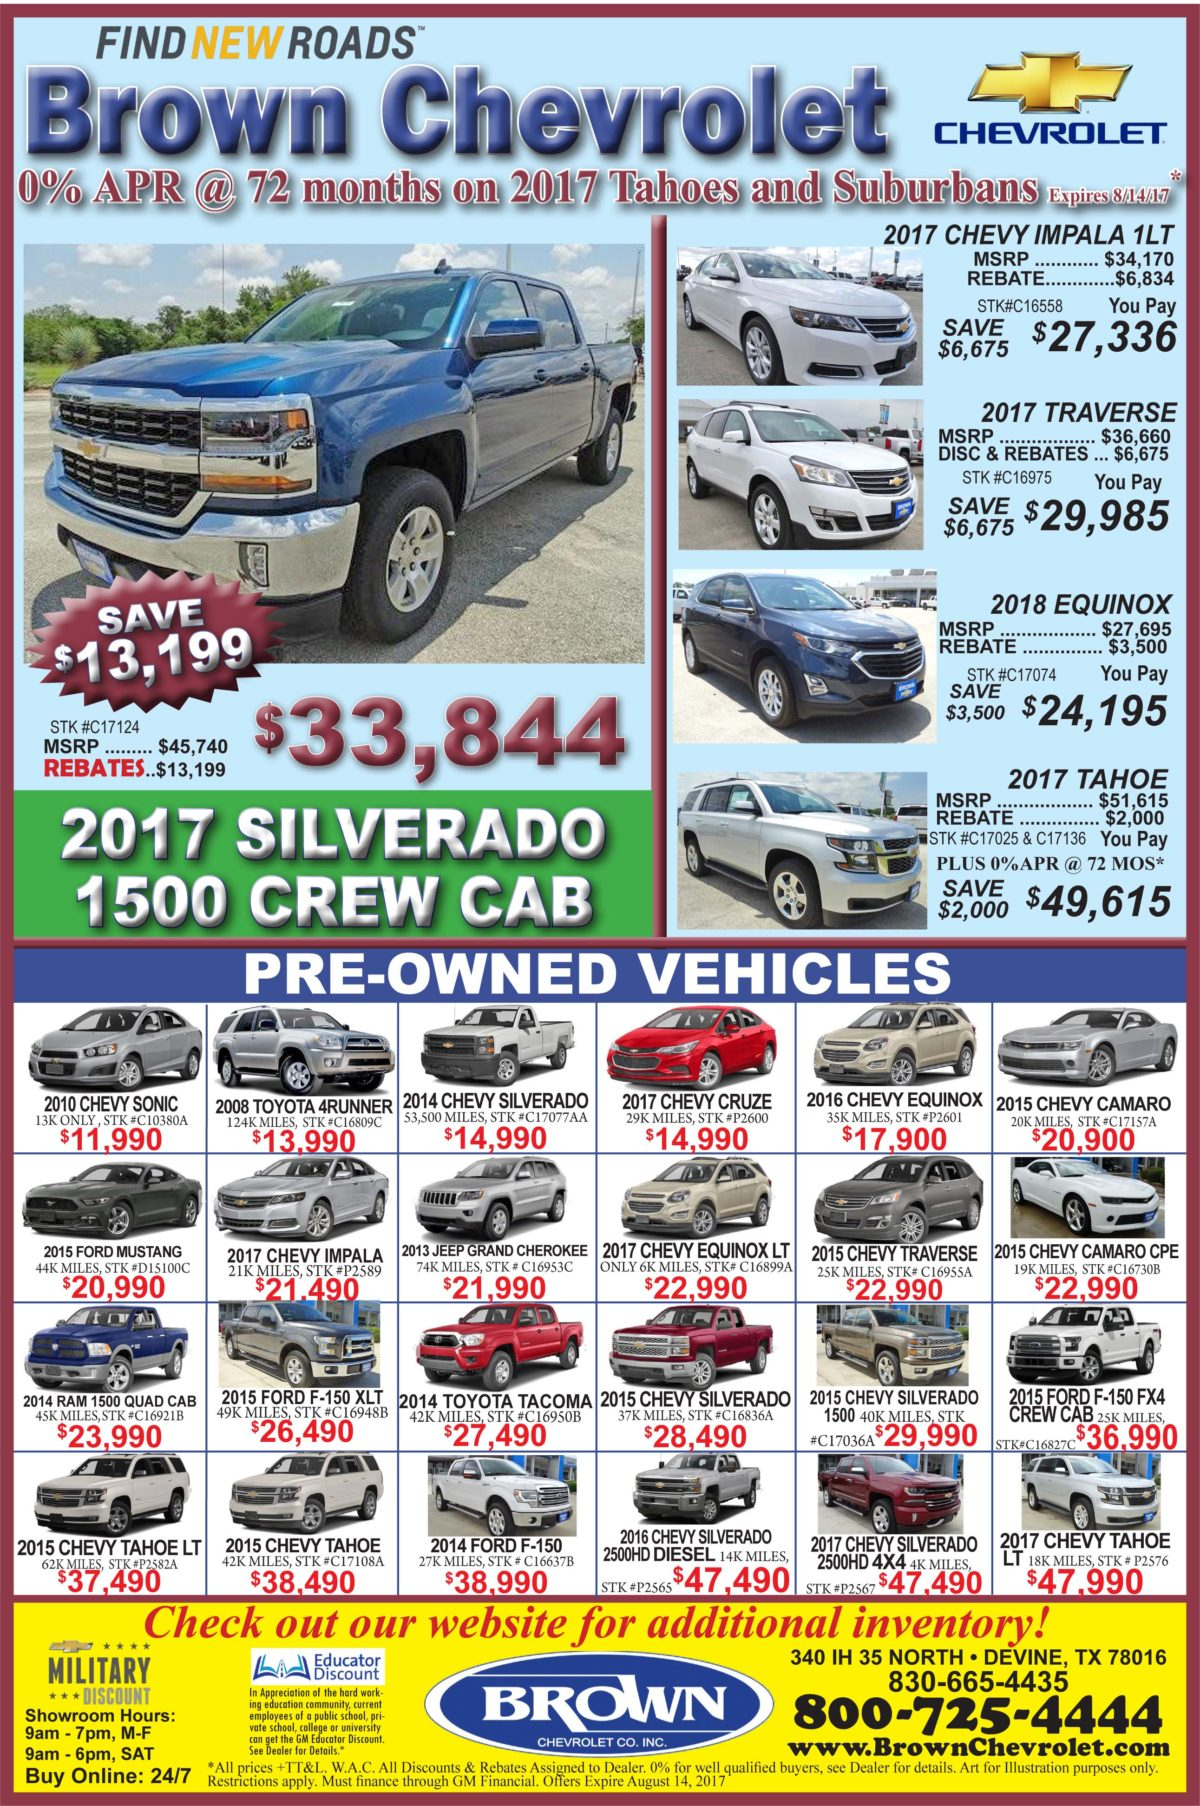 Brown Chevrolet deals for the week of 8-9-17